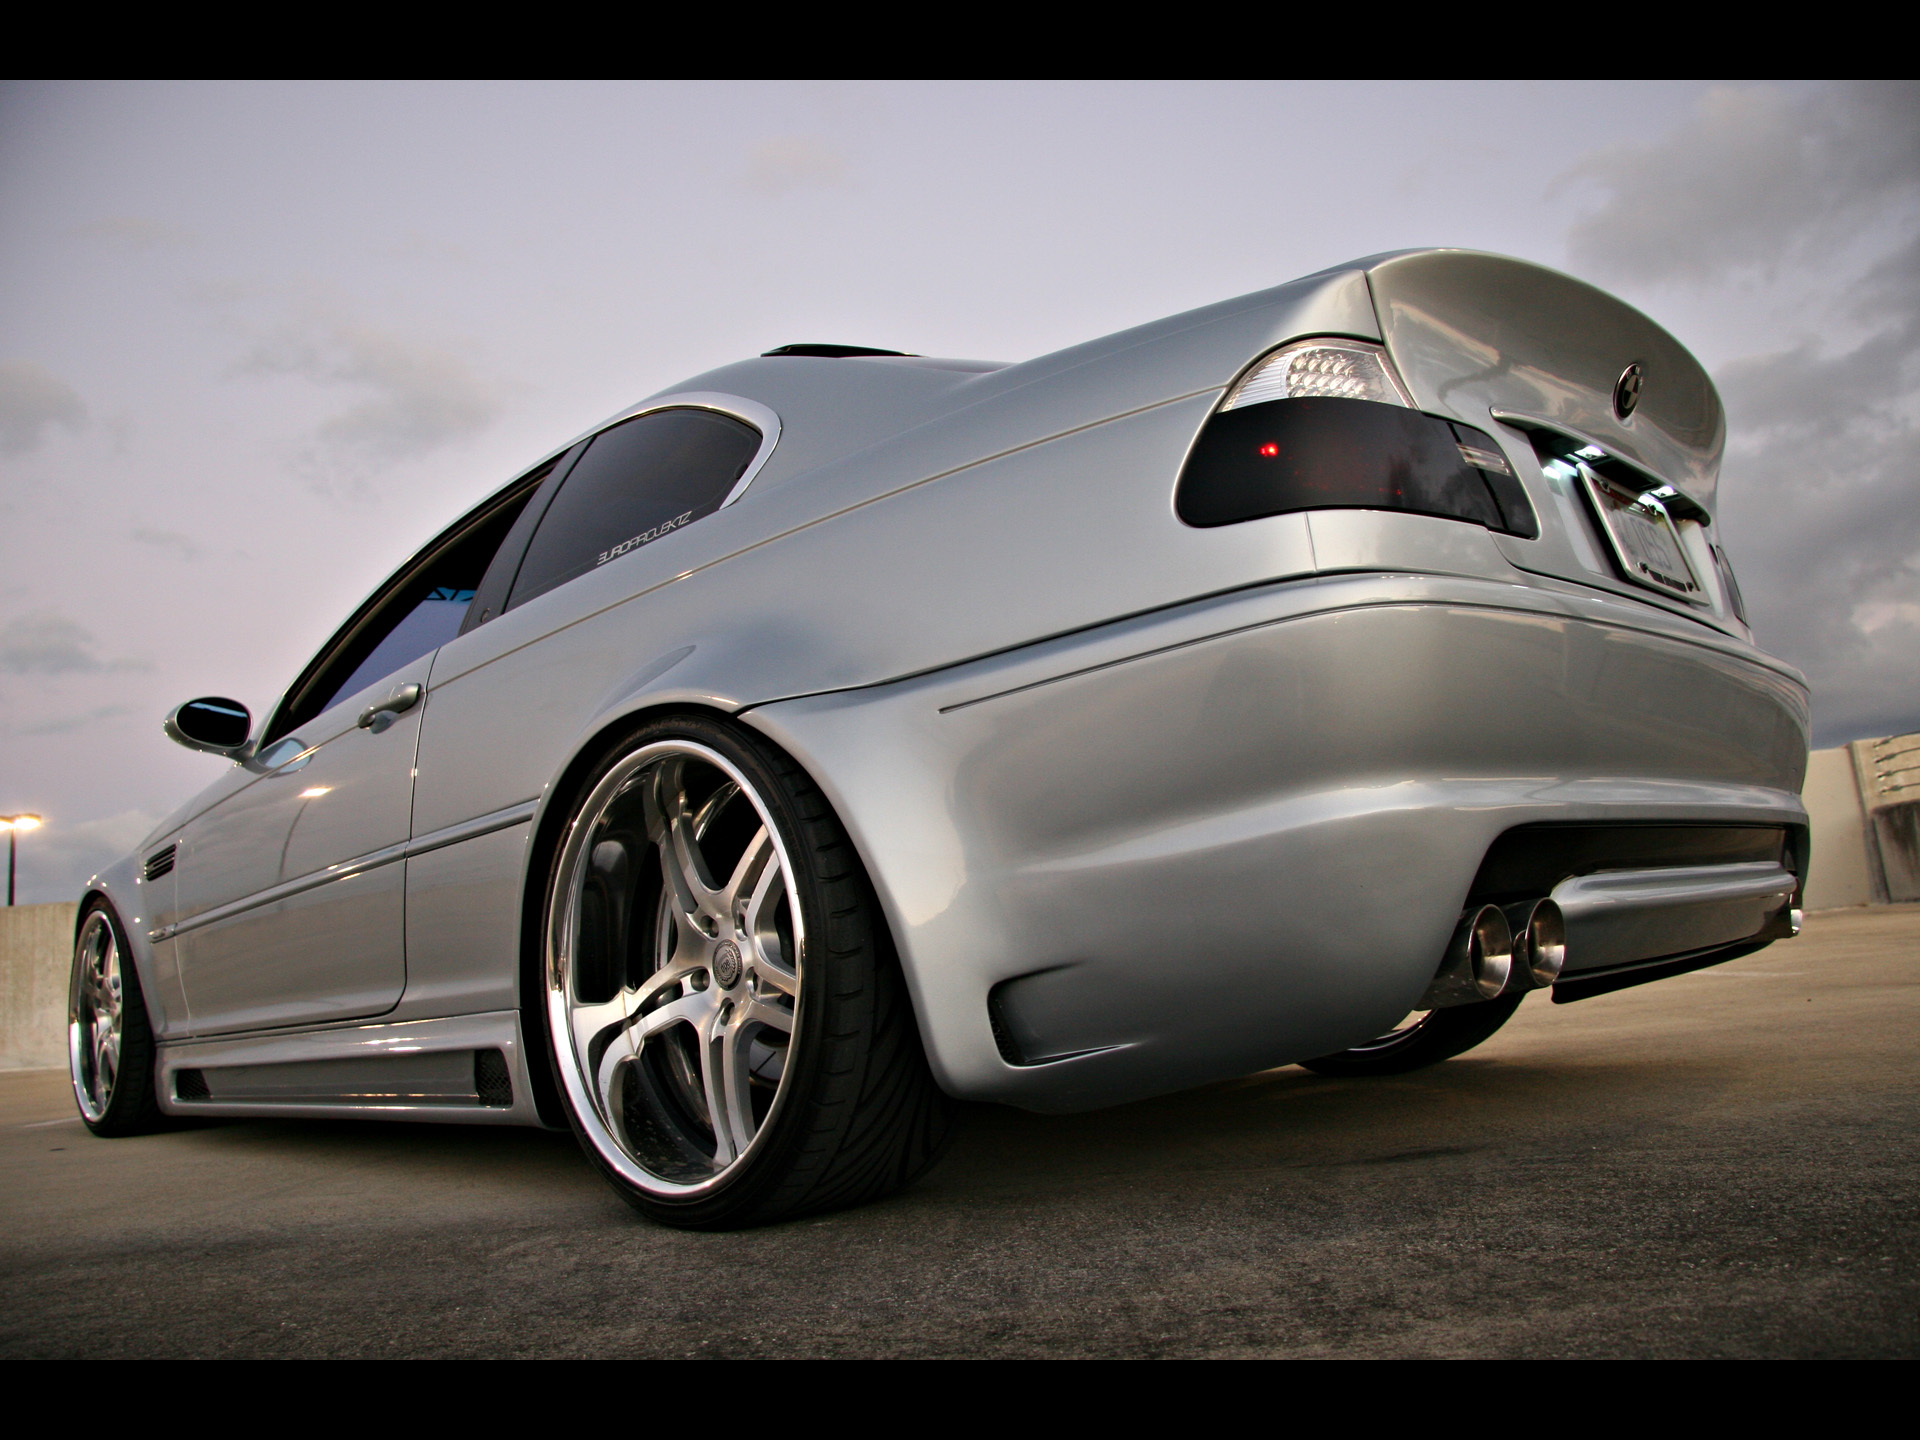 Car Pictures · BMW 325Ci Europrojektz - OSS photo gallery.